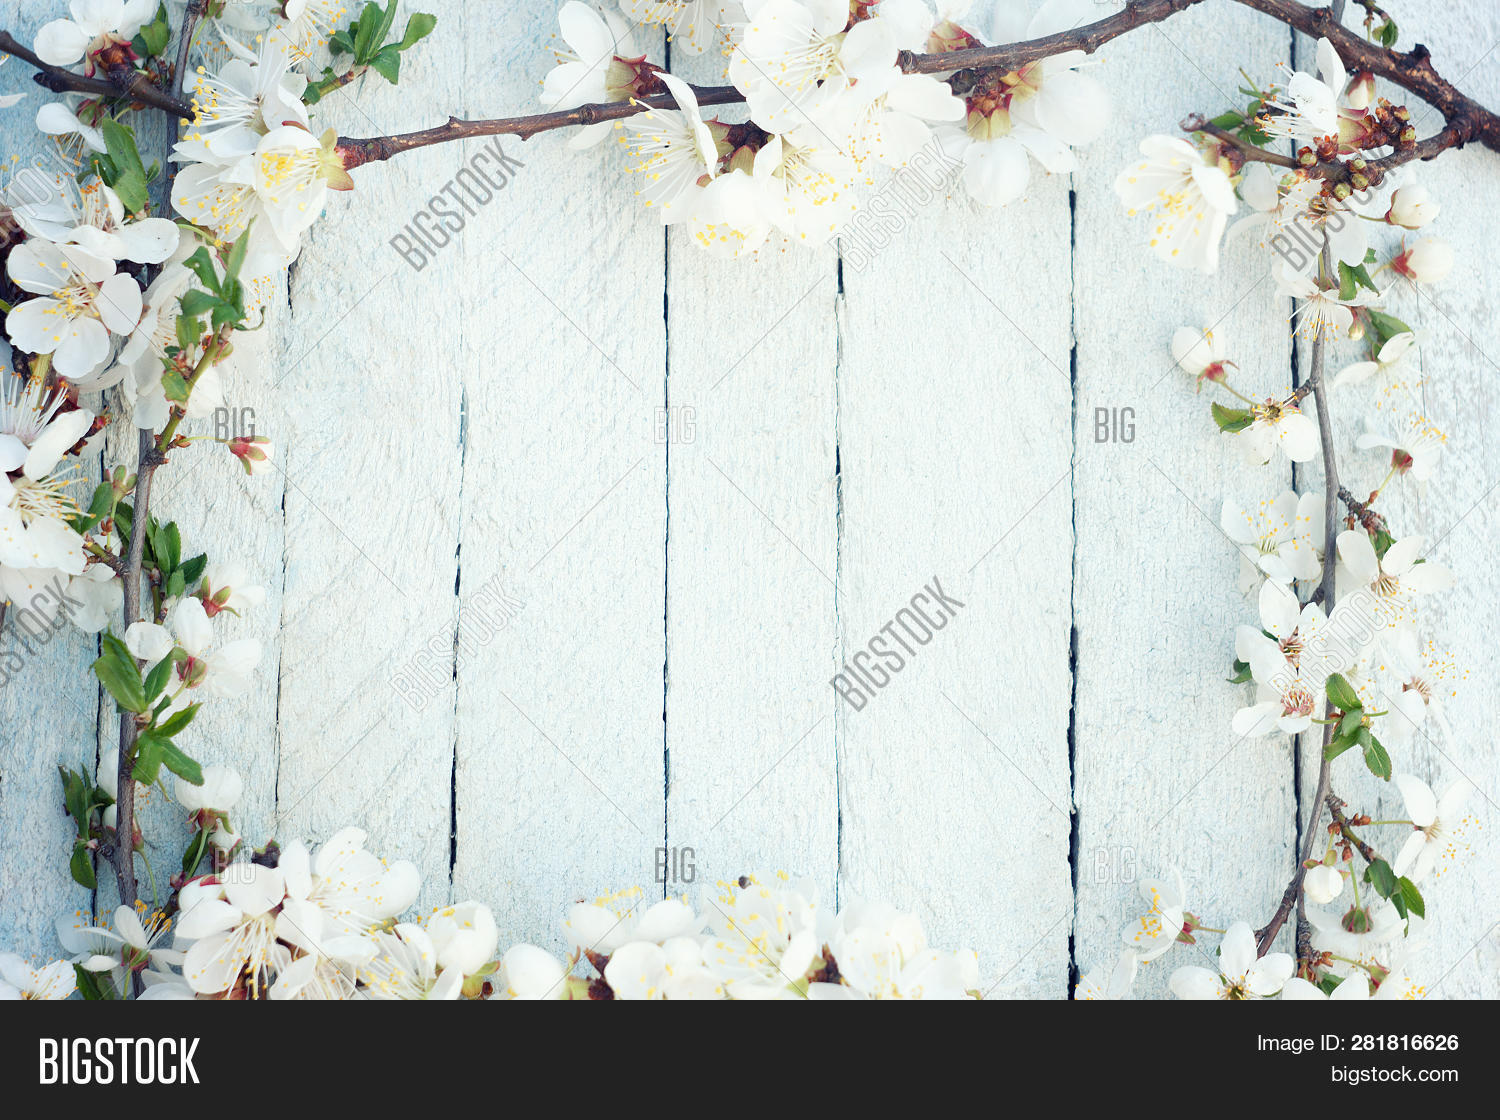 april,aroma,art,background,beautiful,beauty,blossoms,border,cherry,closeup,composition,concept,copy,design,display,floral,flower,frame,fresh,garden,gardening,green,image,leaves,march,natural,nature,old,petal,picnic,pistil,plum,product,pure,rustic,shelf,soft,space,spring,summer,tabletop,texture,tree,twig,up,view,white,wood,wooden,zen